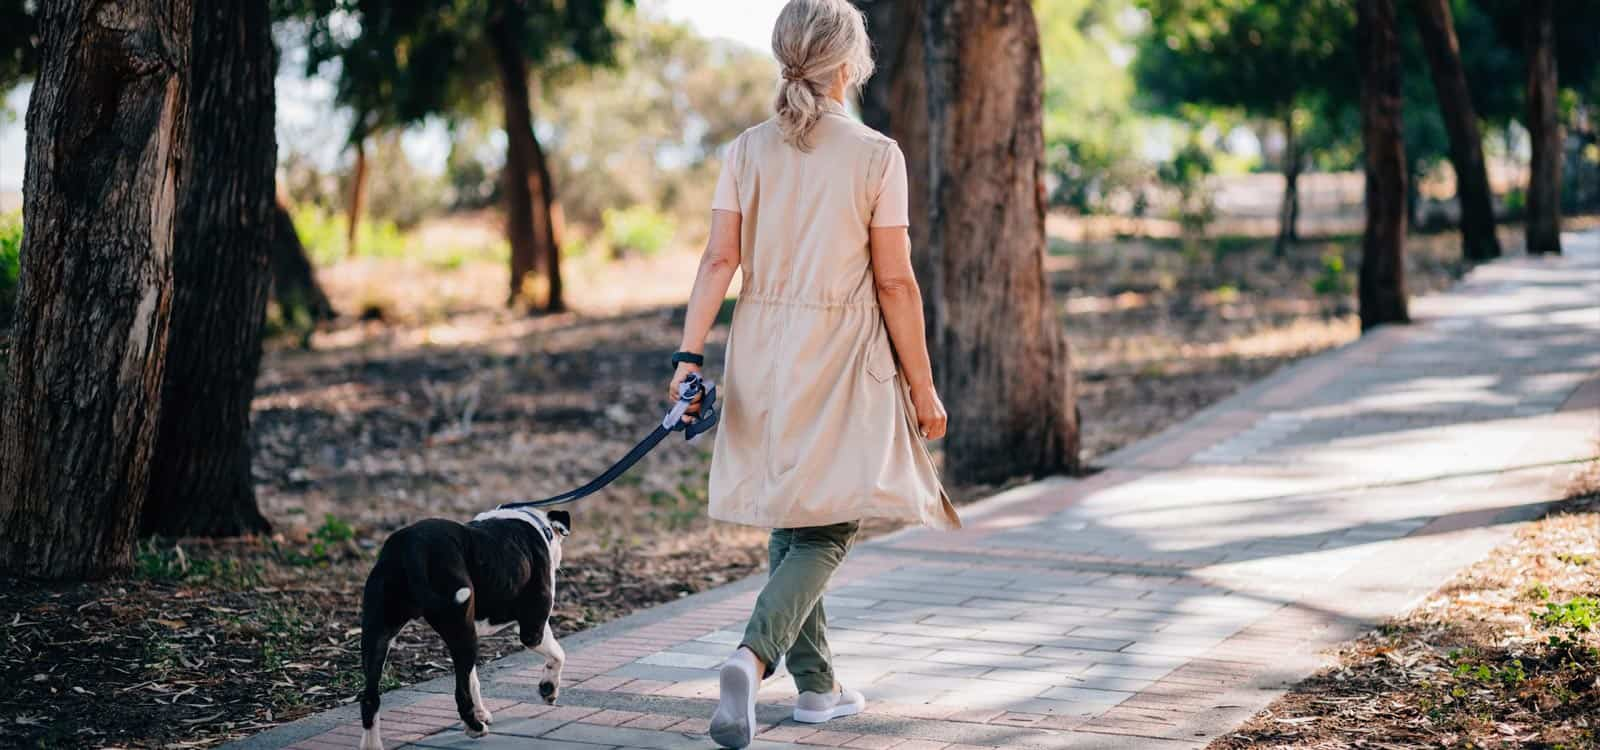 A blonde-haired woman in a trench walks a black dog in a park, indicating she pursued the business idea of becoming a dog handler